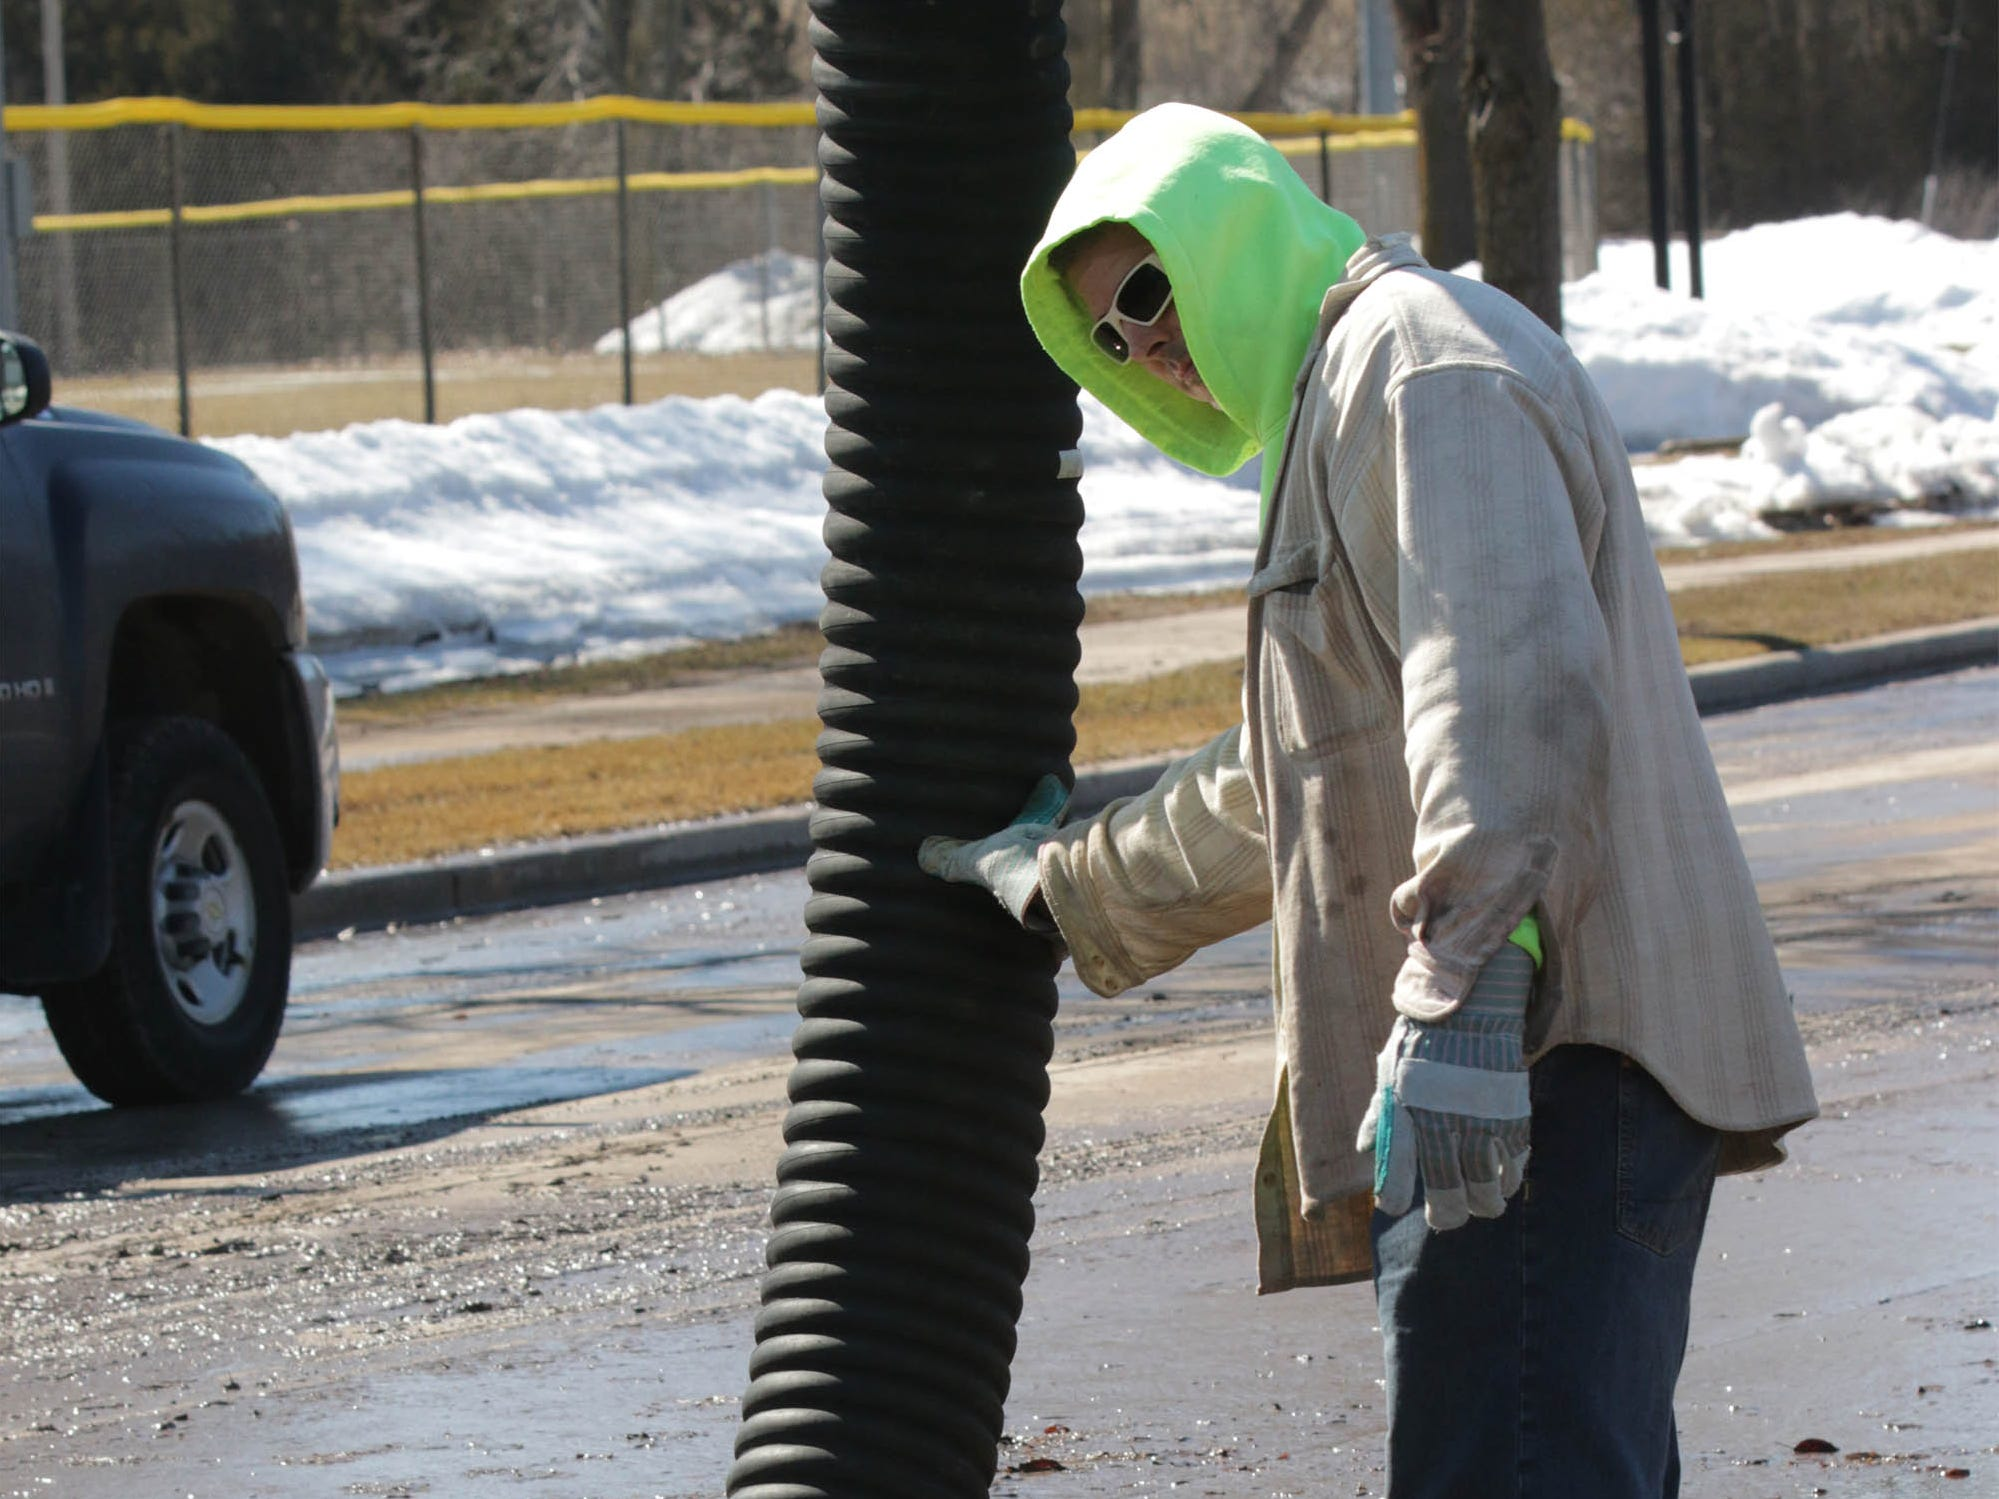 Department of Public works employee Ken Meinert controls the suction pipe of a sewer jet, Tuesday, March 19, 2019, in Sheboygan, Wis. A city employee said they are hoping to have the street open in the next day.